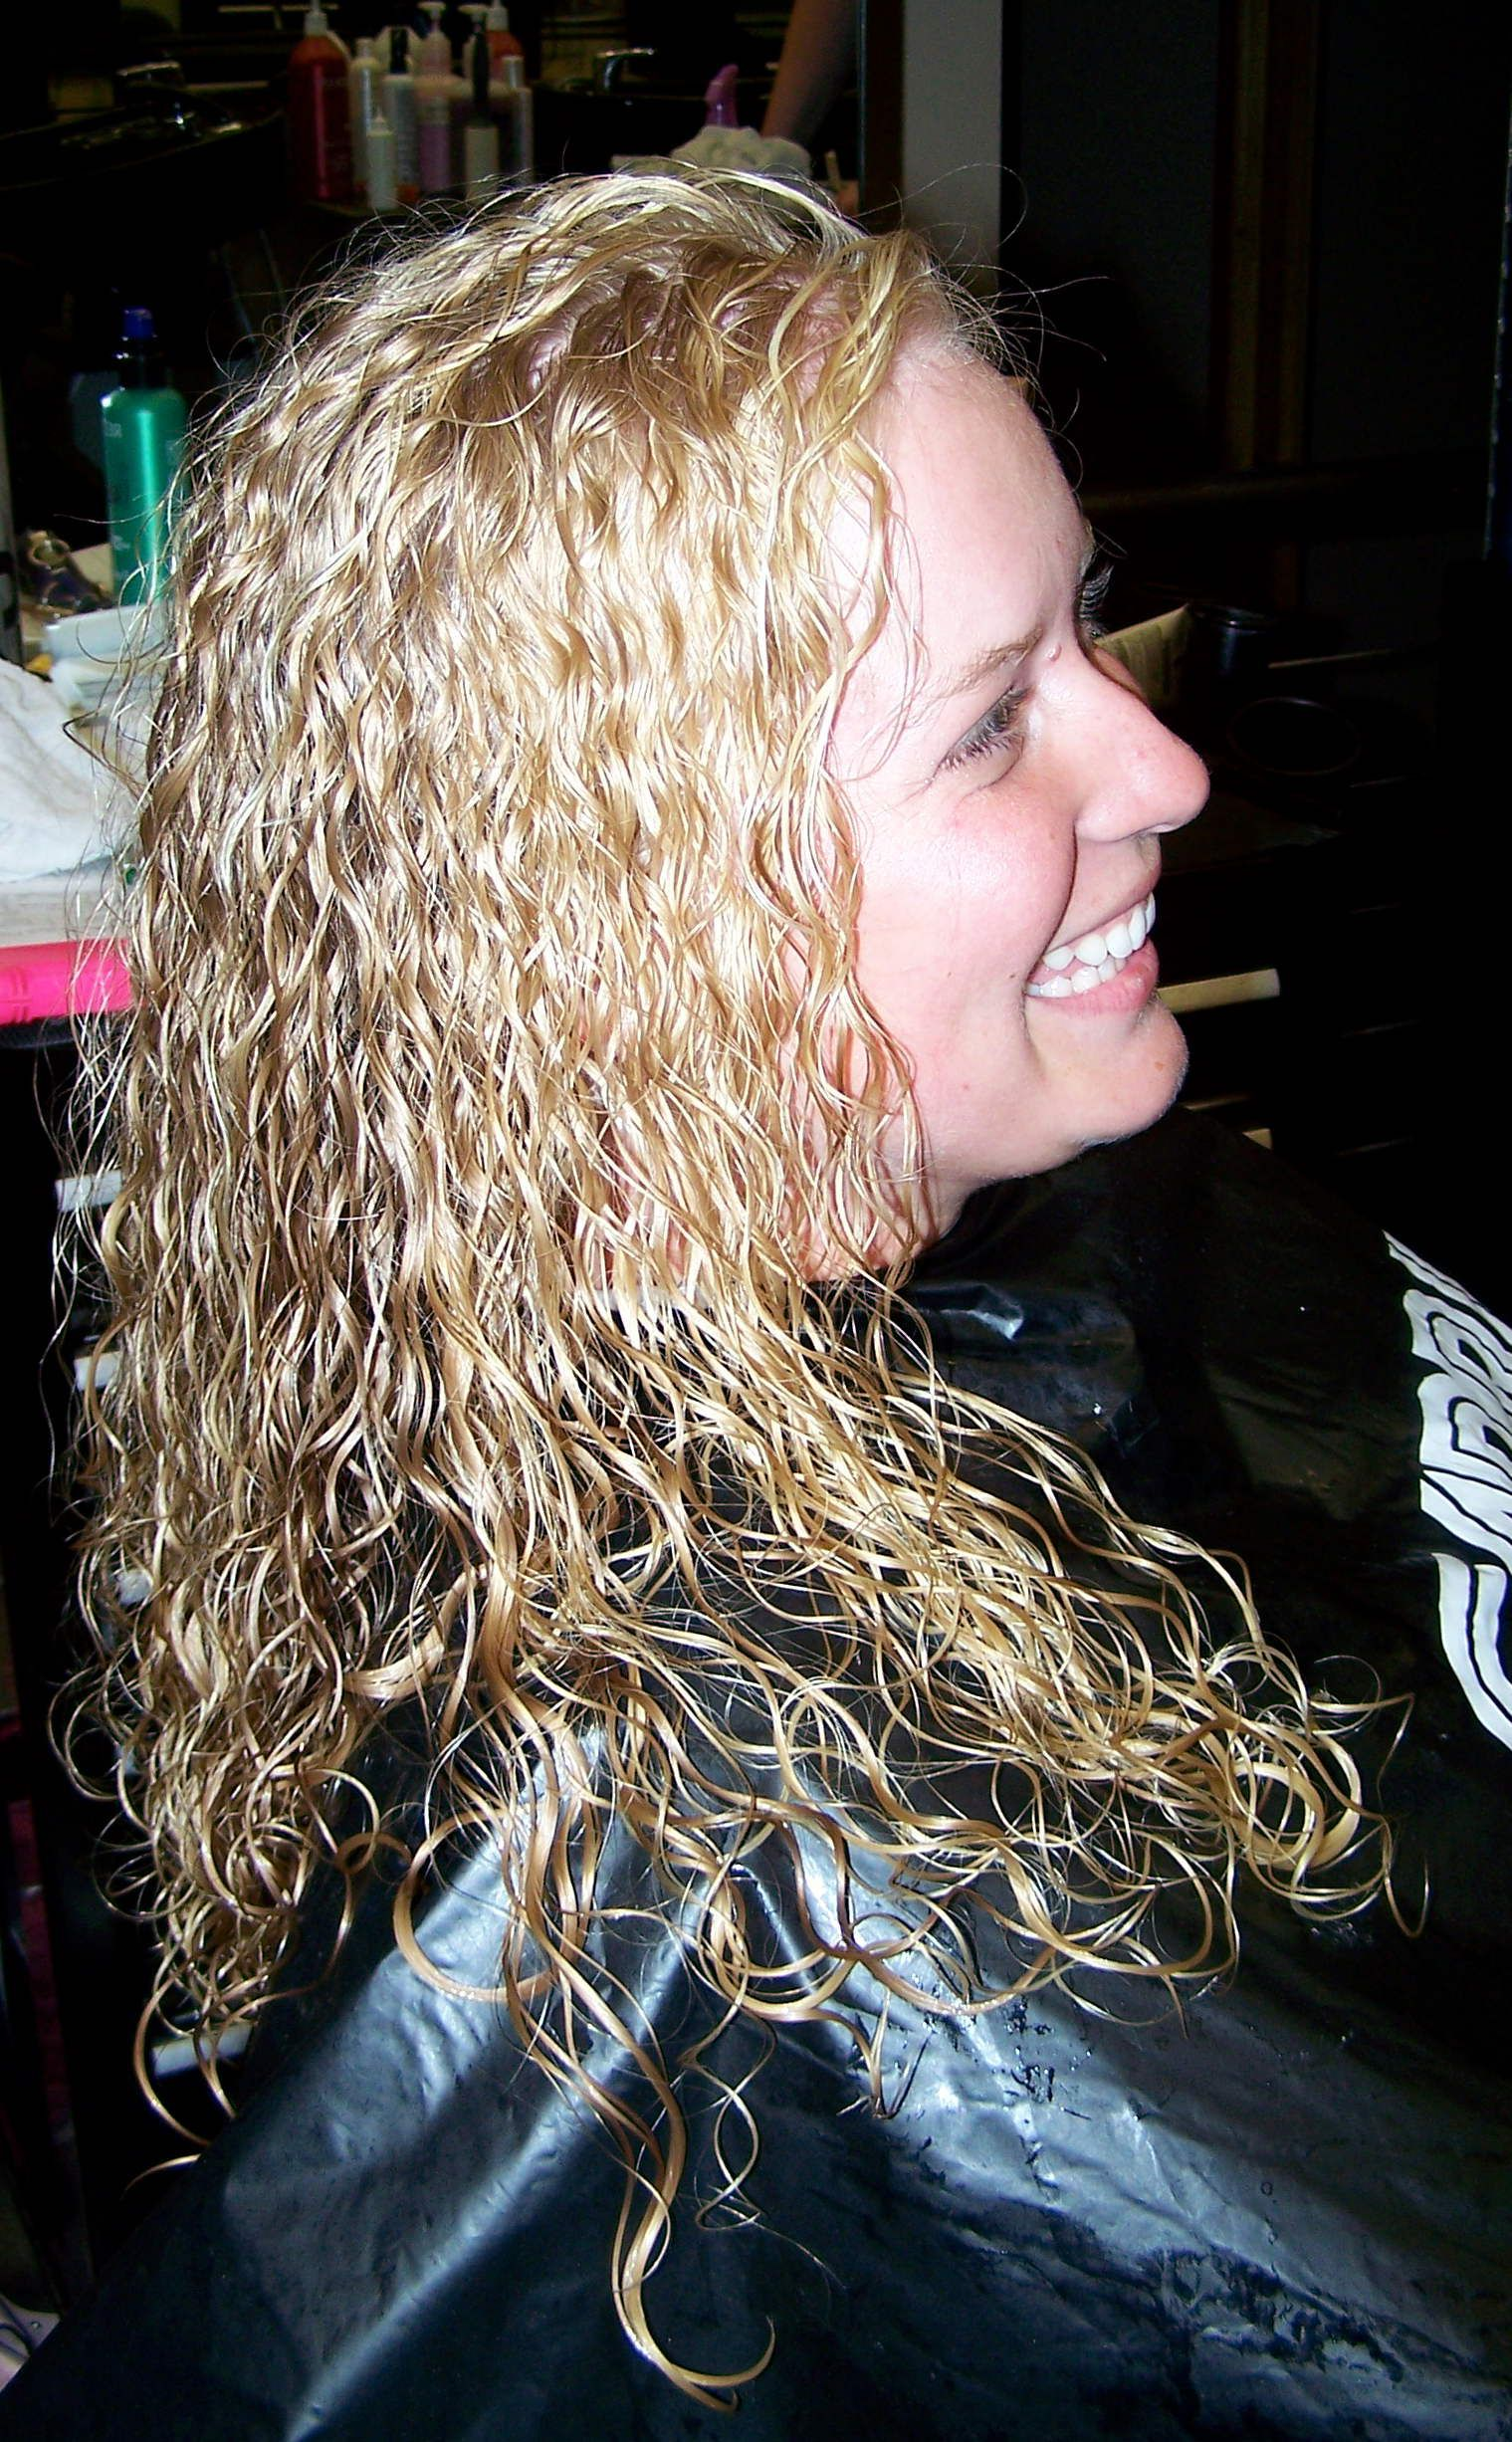 Straight perm and dying hair - Straight Perm And Dying Hair 42